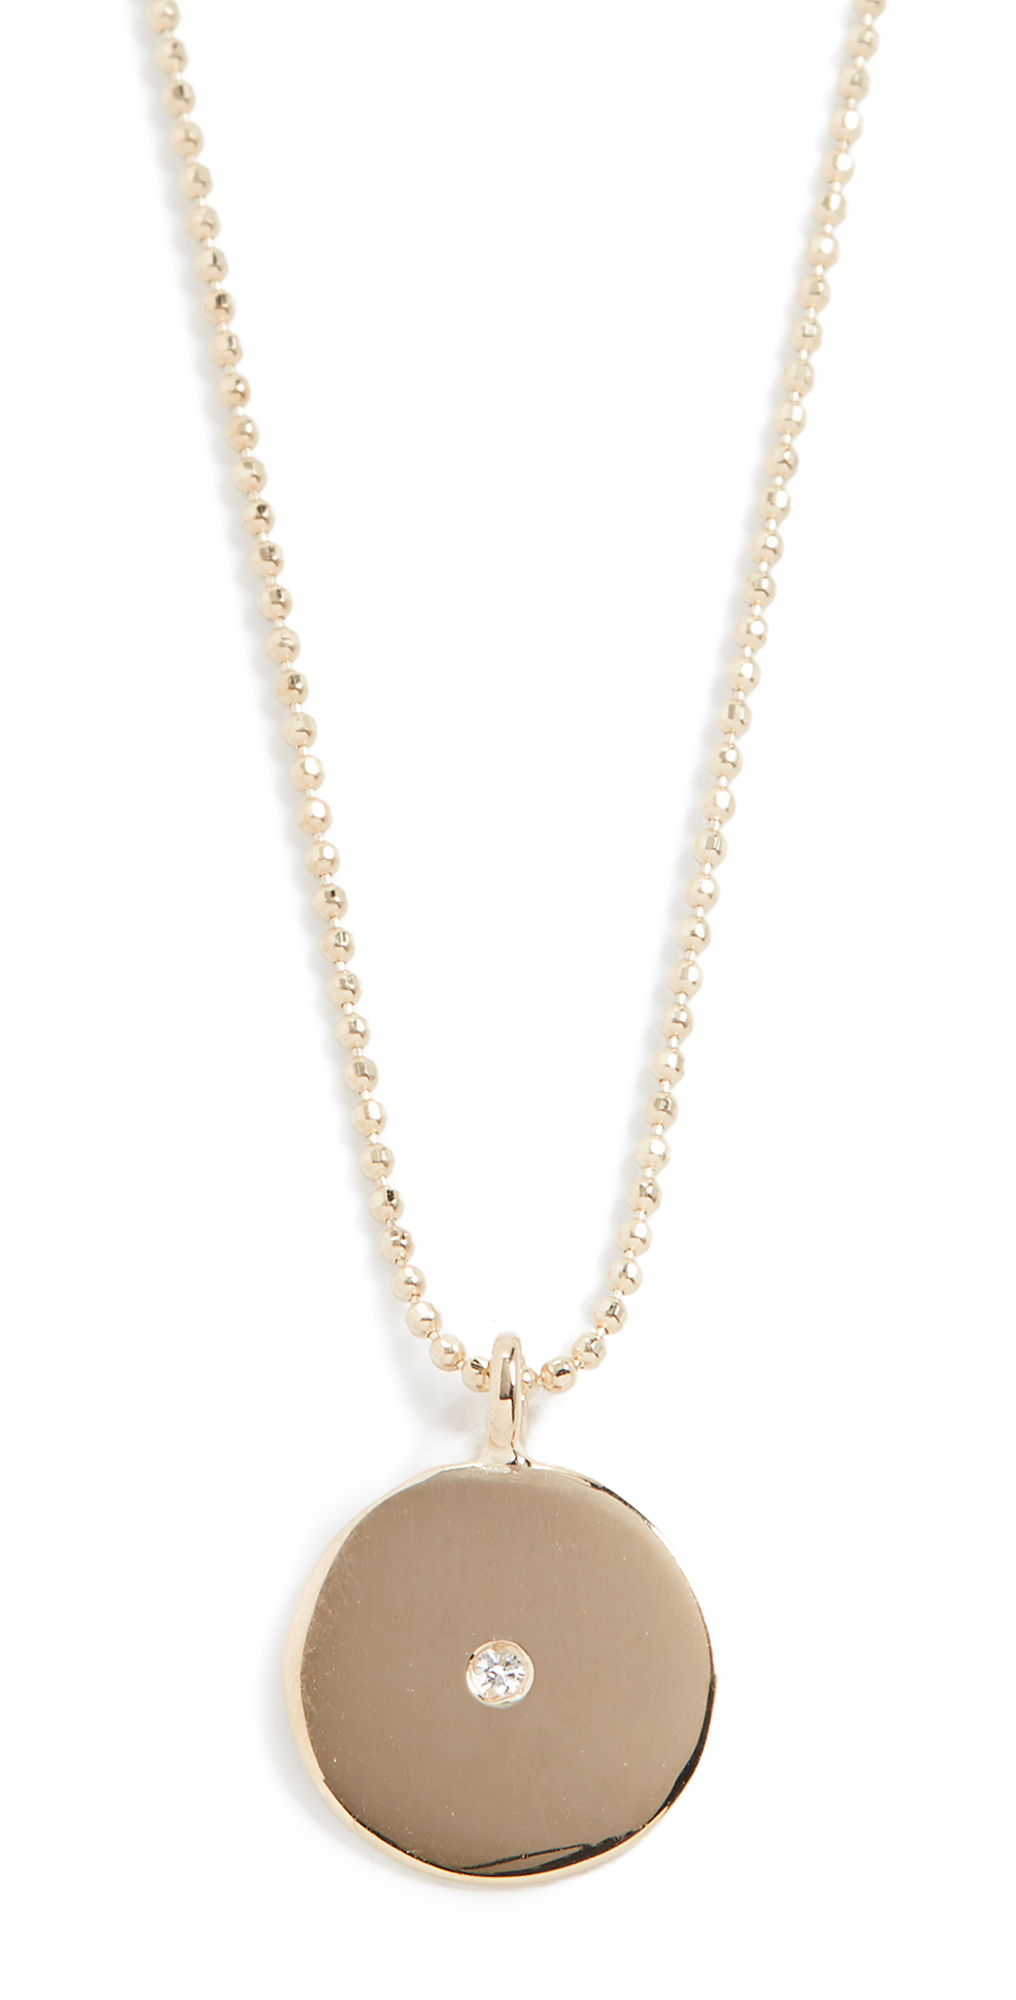 14k Small Circle Pendant Necklace